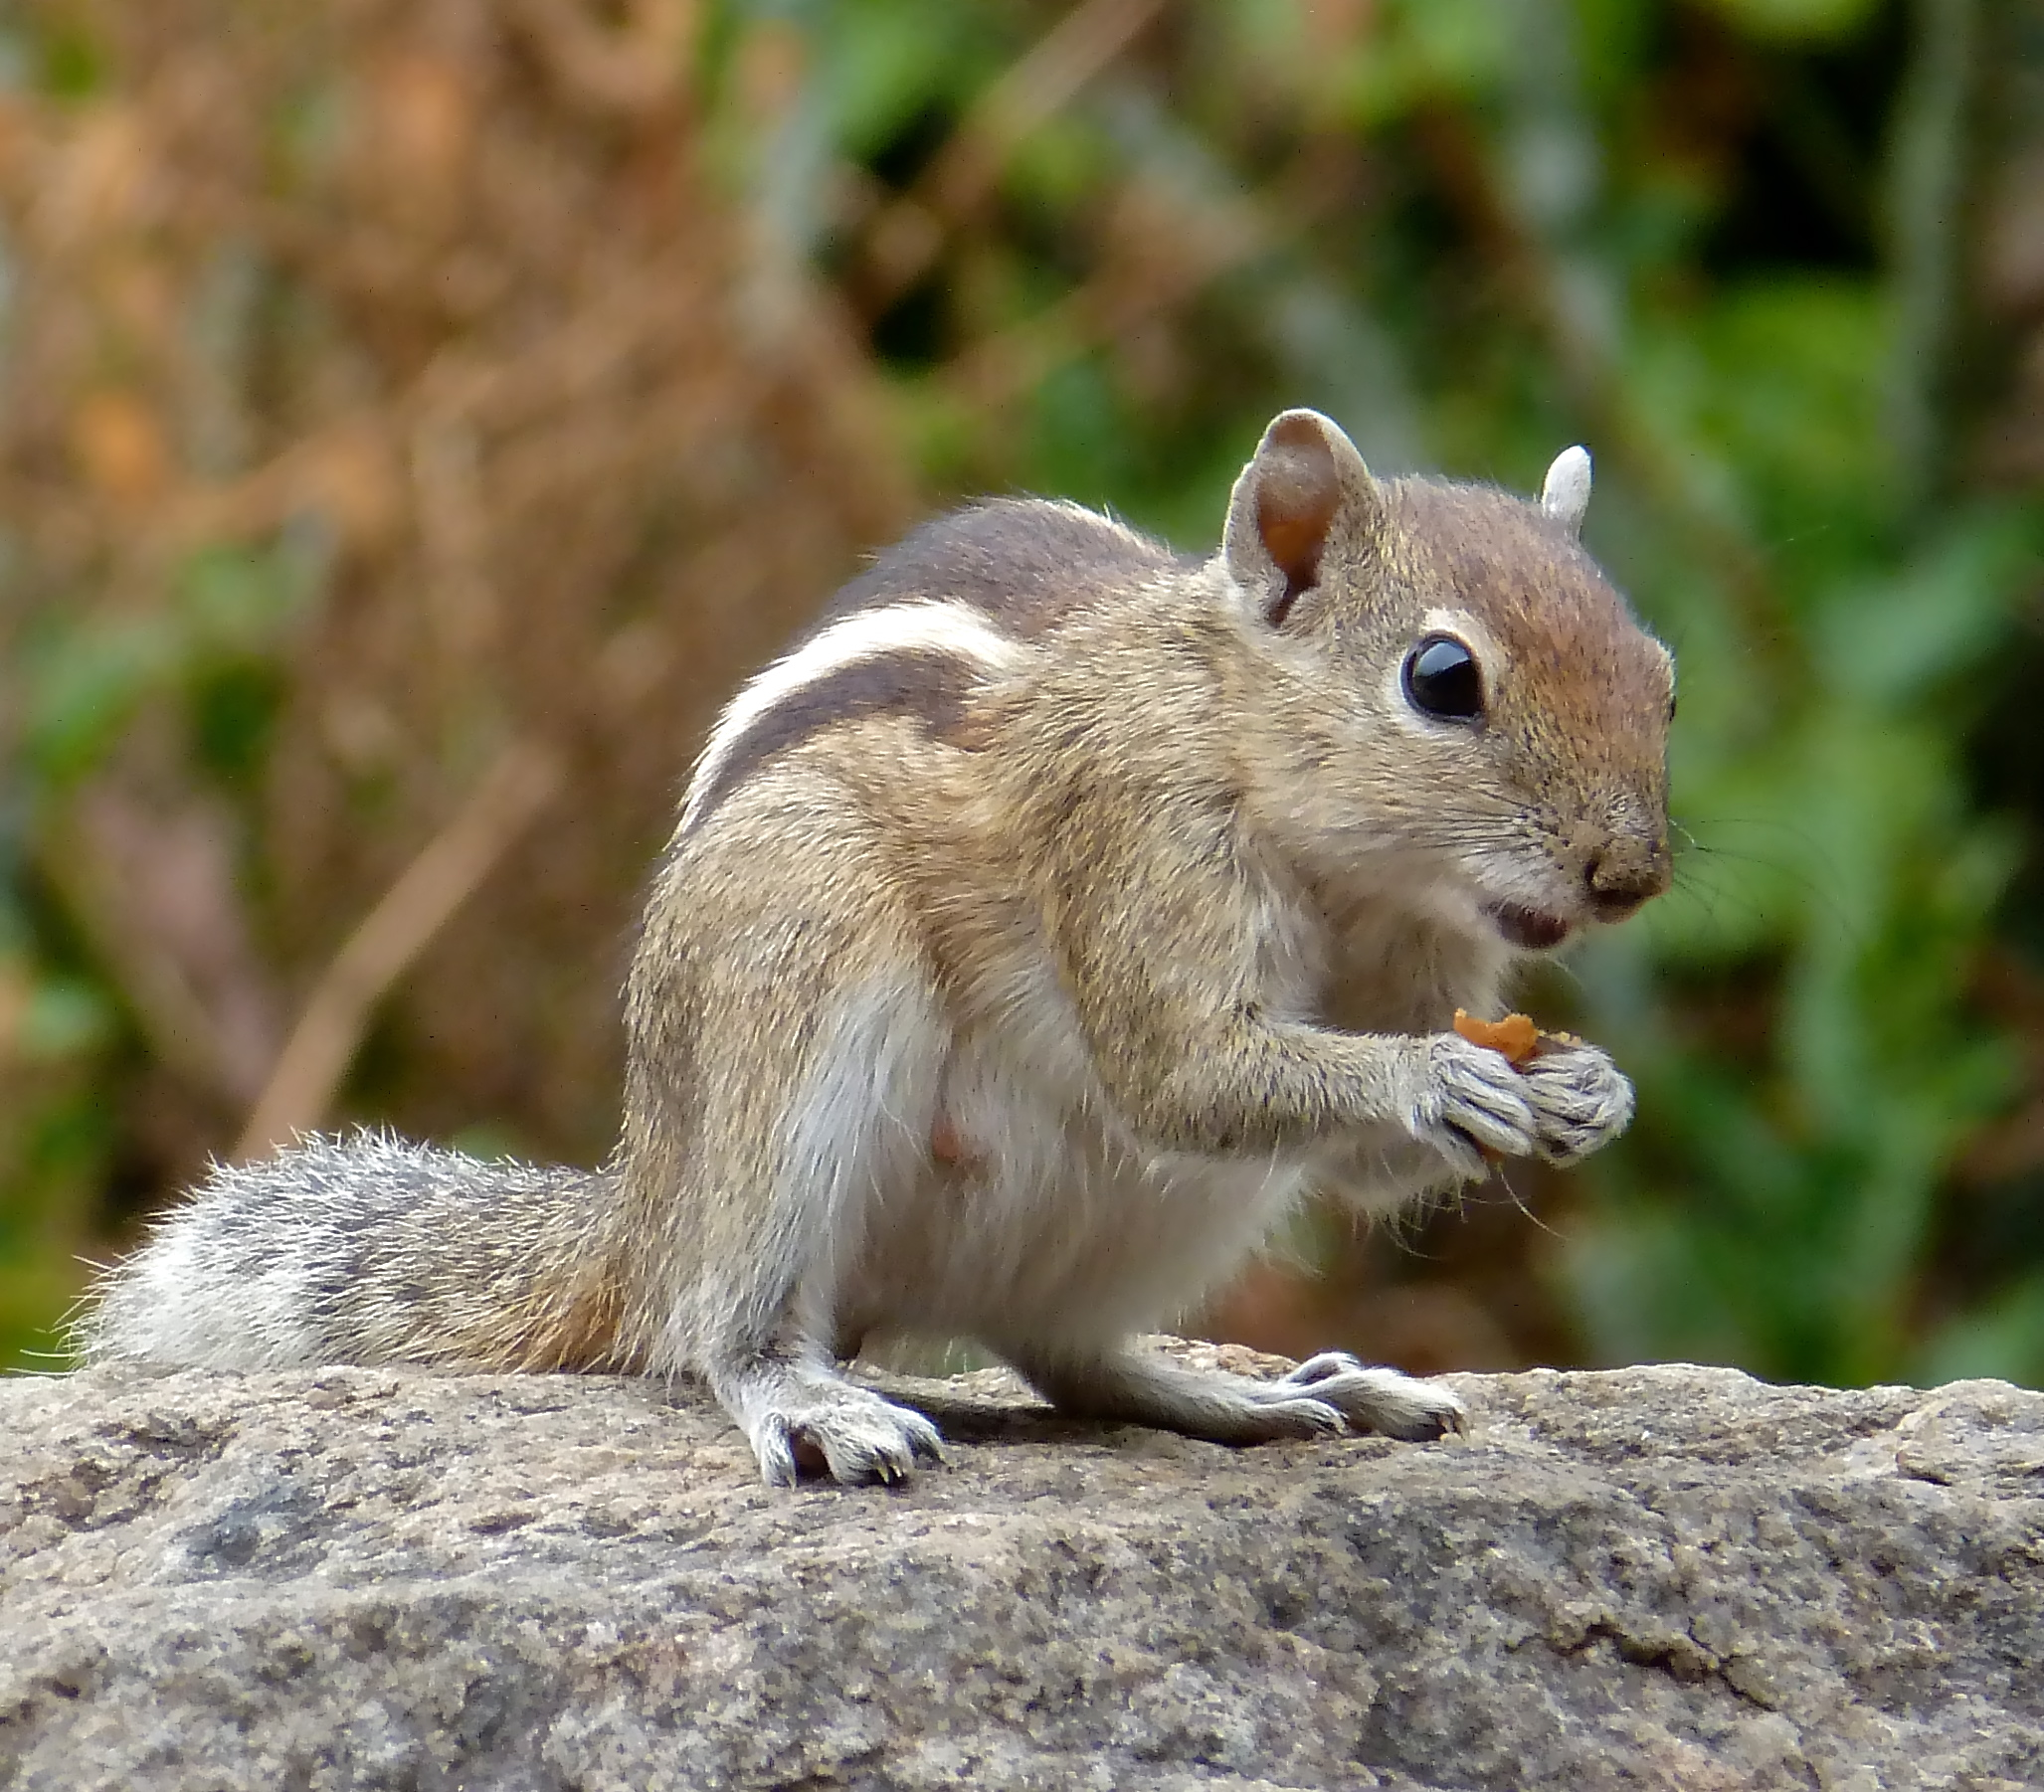 File:Indian Palm Squirrel 2013.jpg - Wikimedia Commons